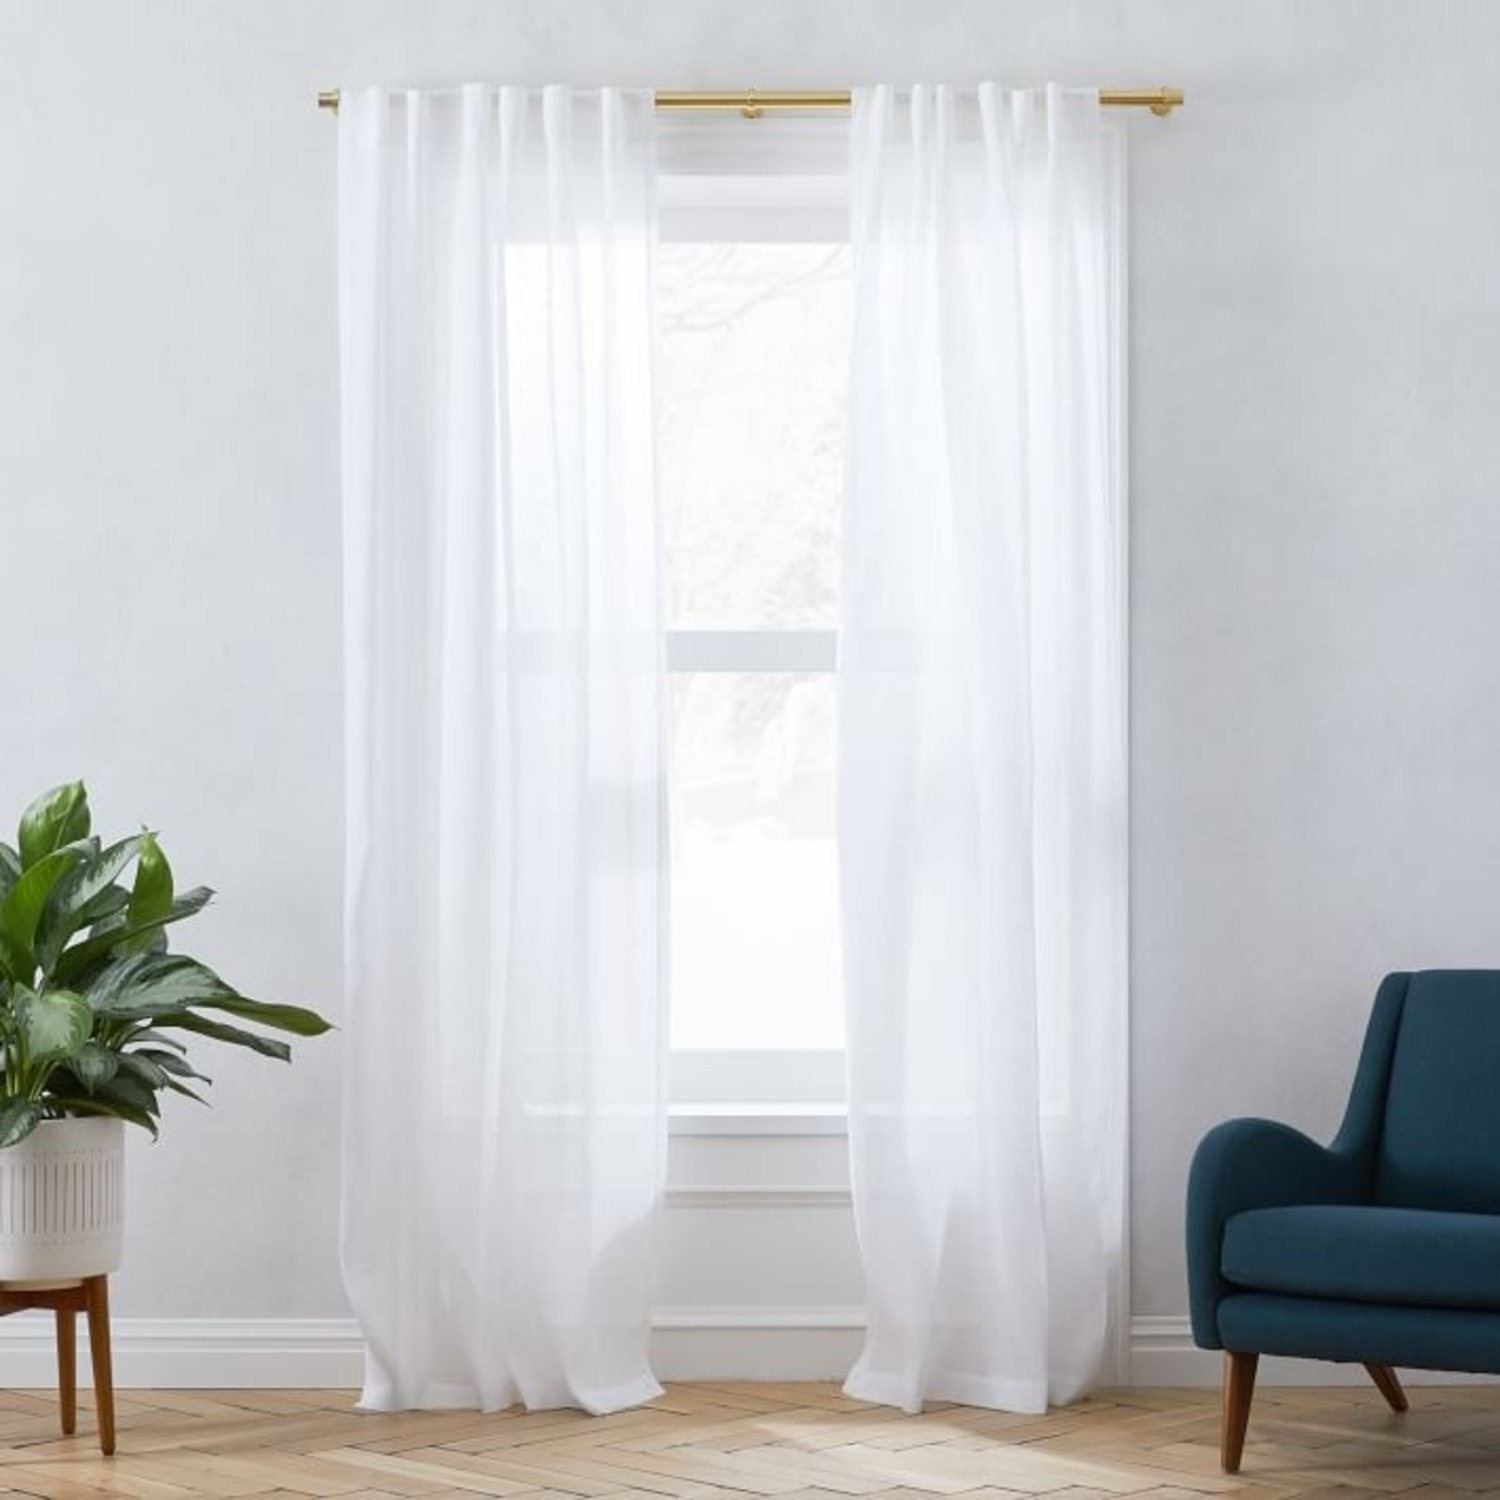 West Elm Sheer Belgian Flax Linen Curtains - White - image-0